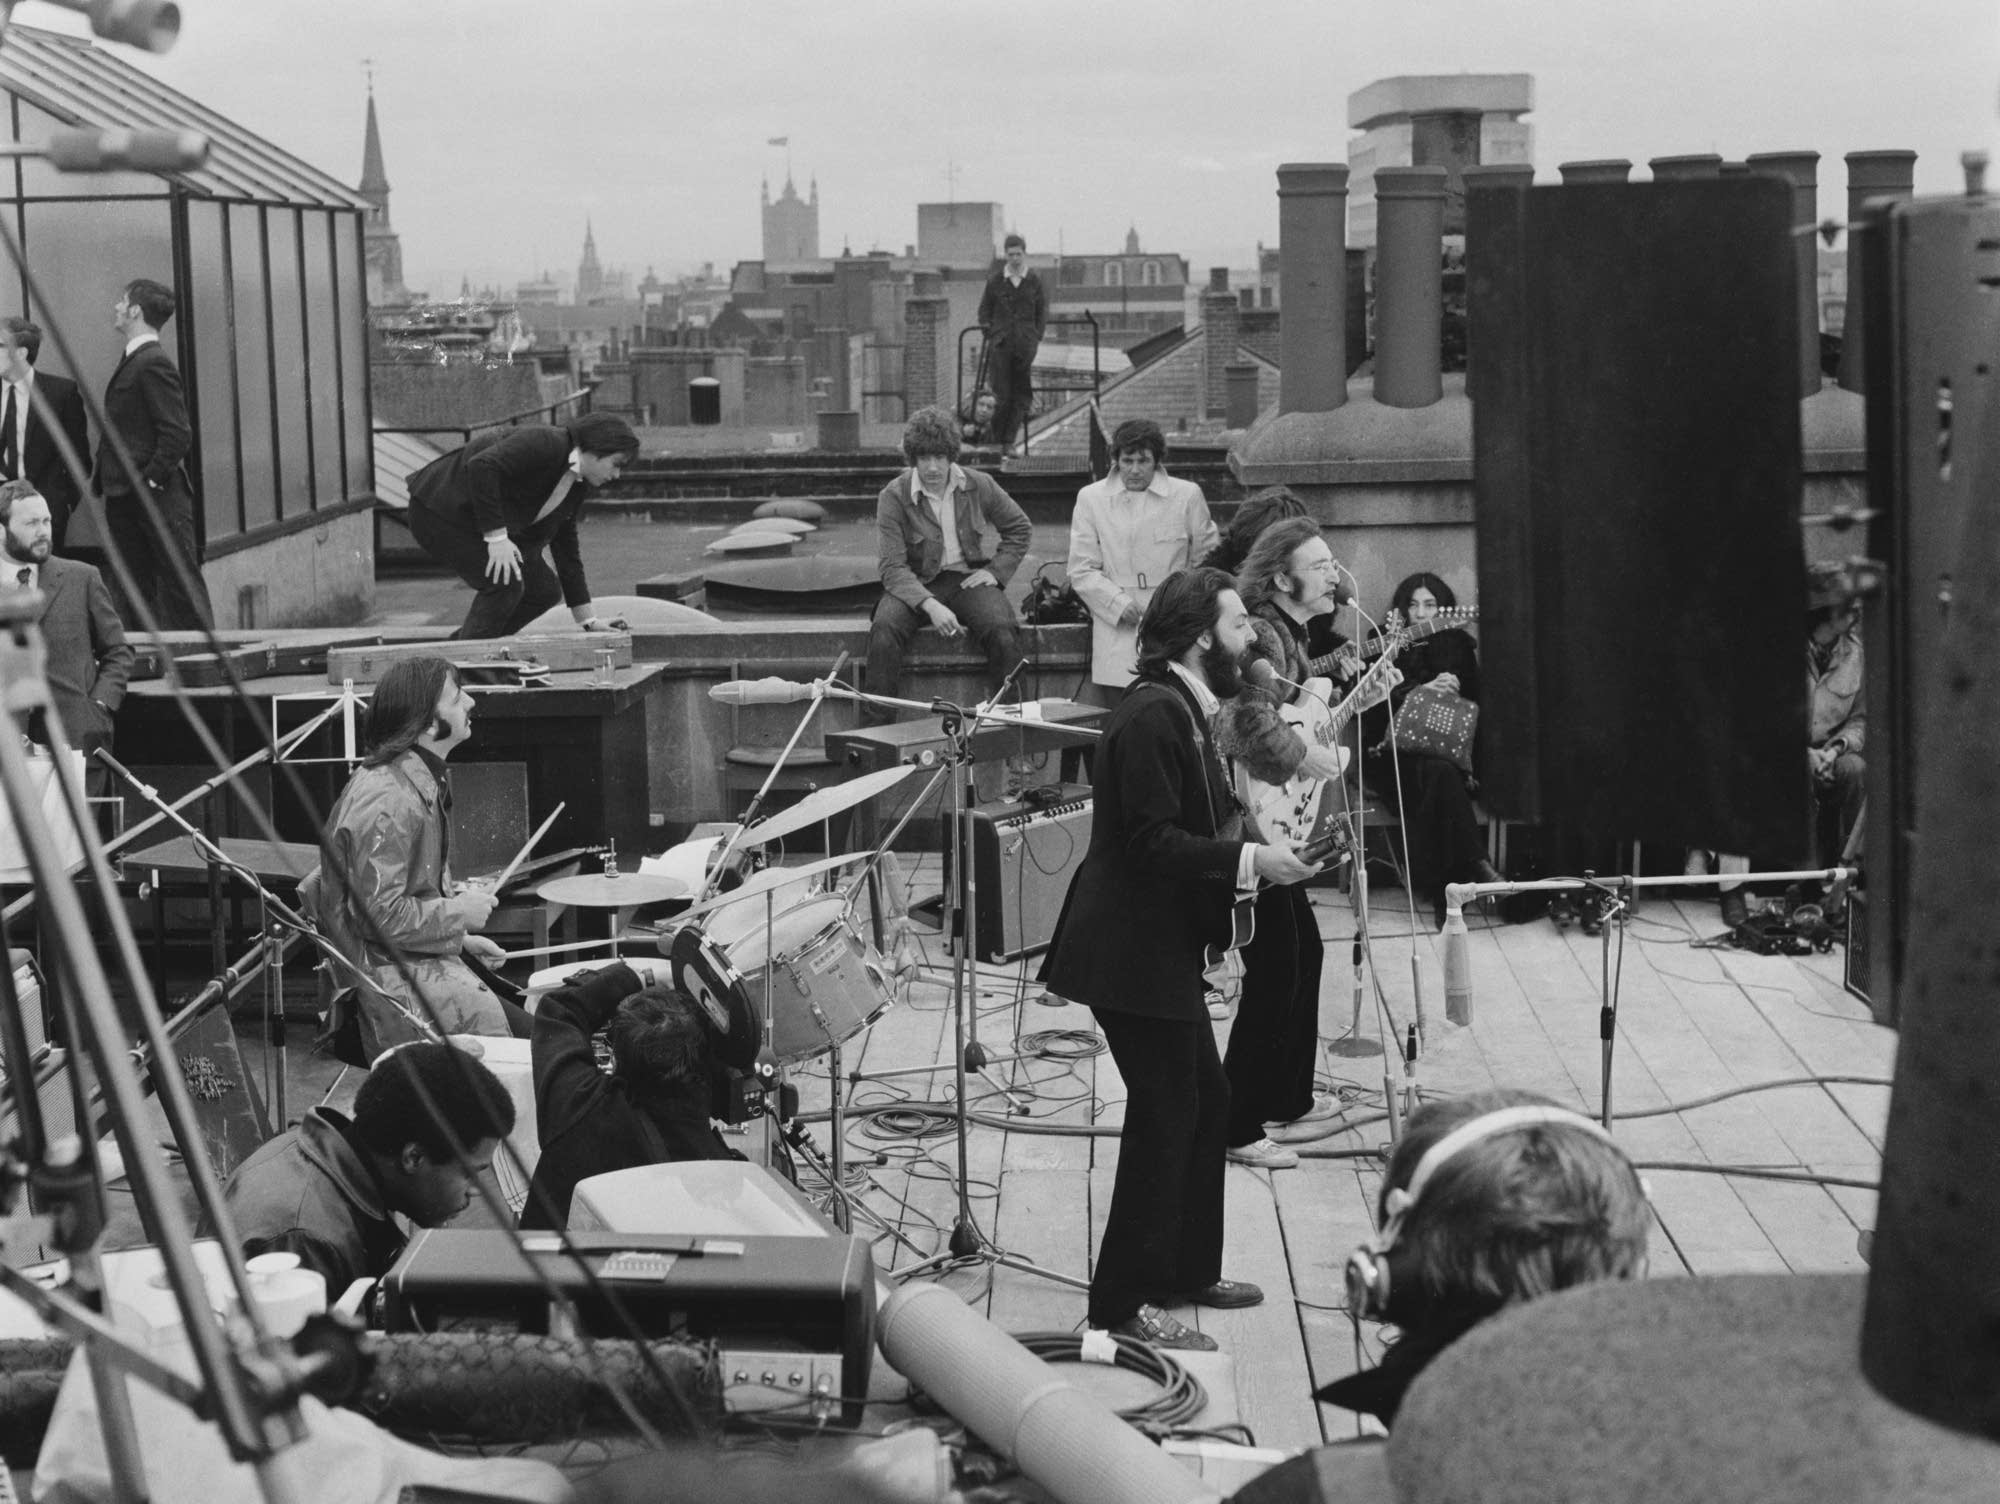 The Beatles performing on the roof of the Apple Organization building.